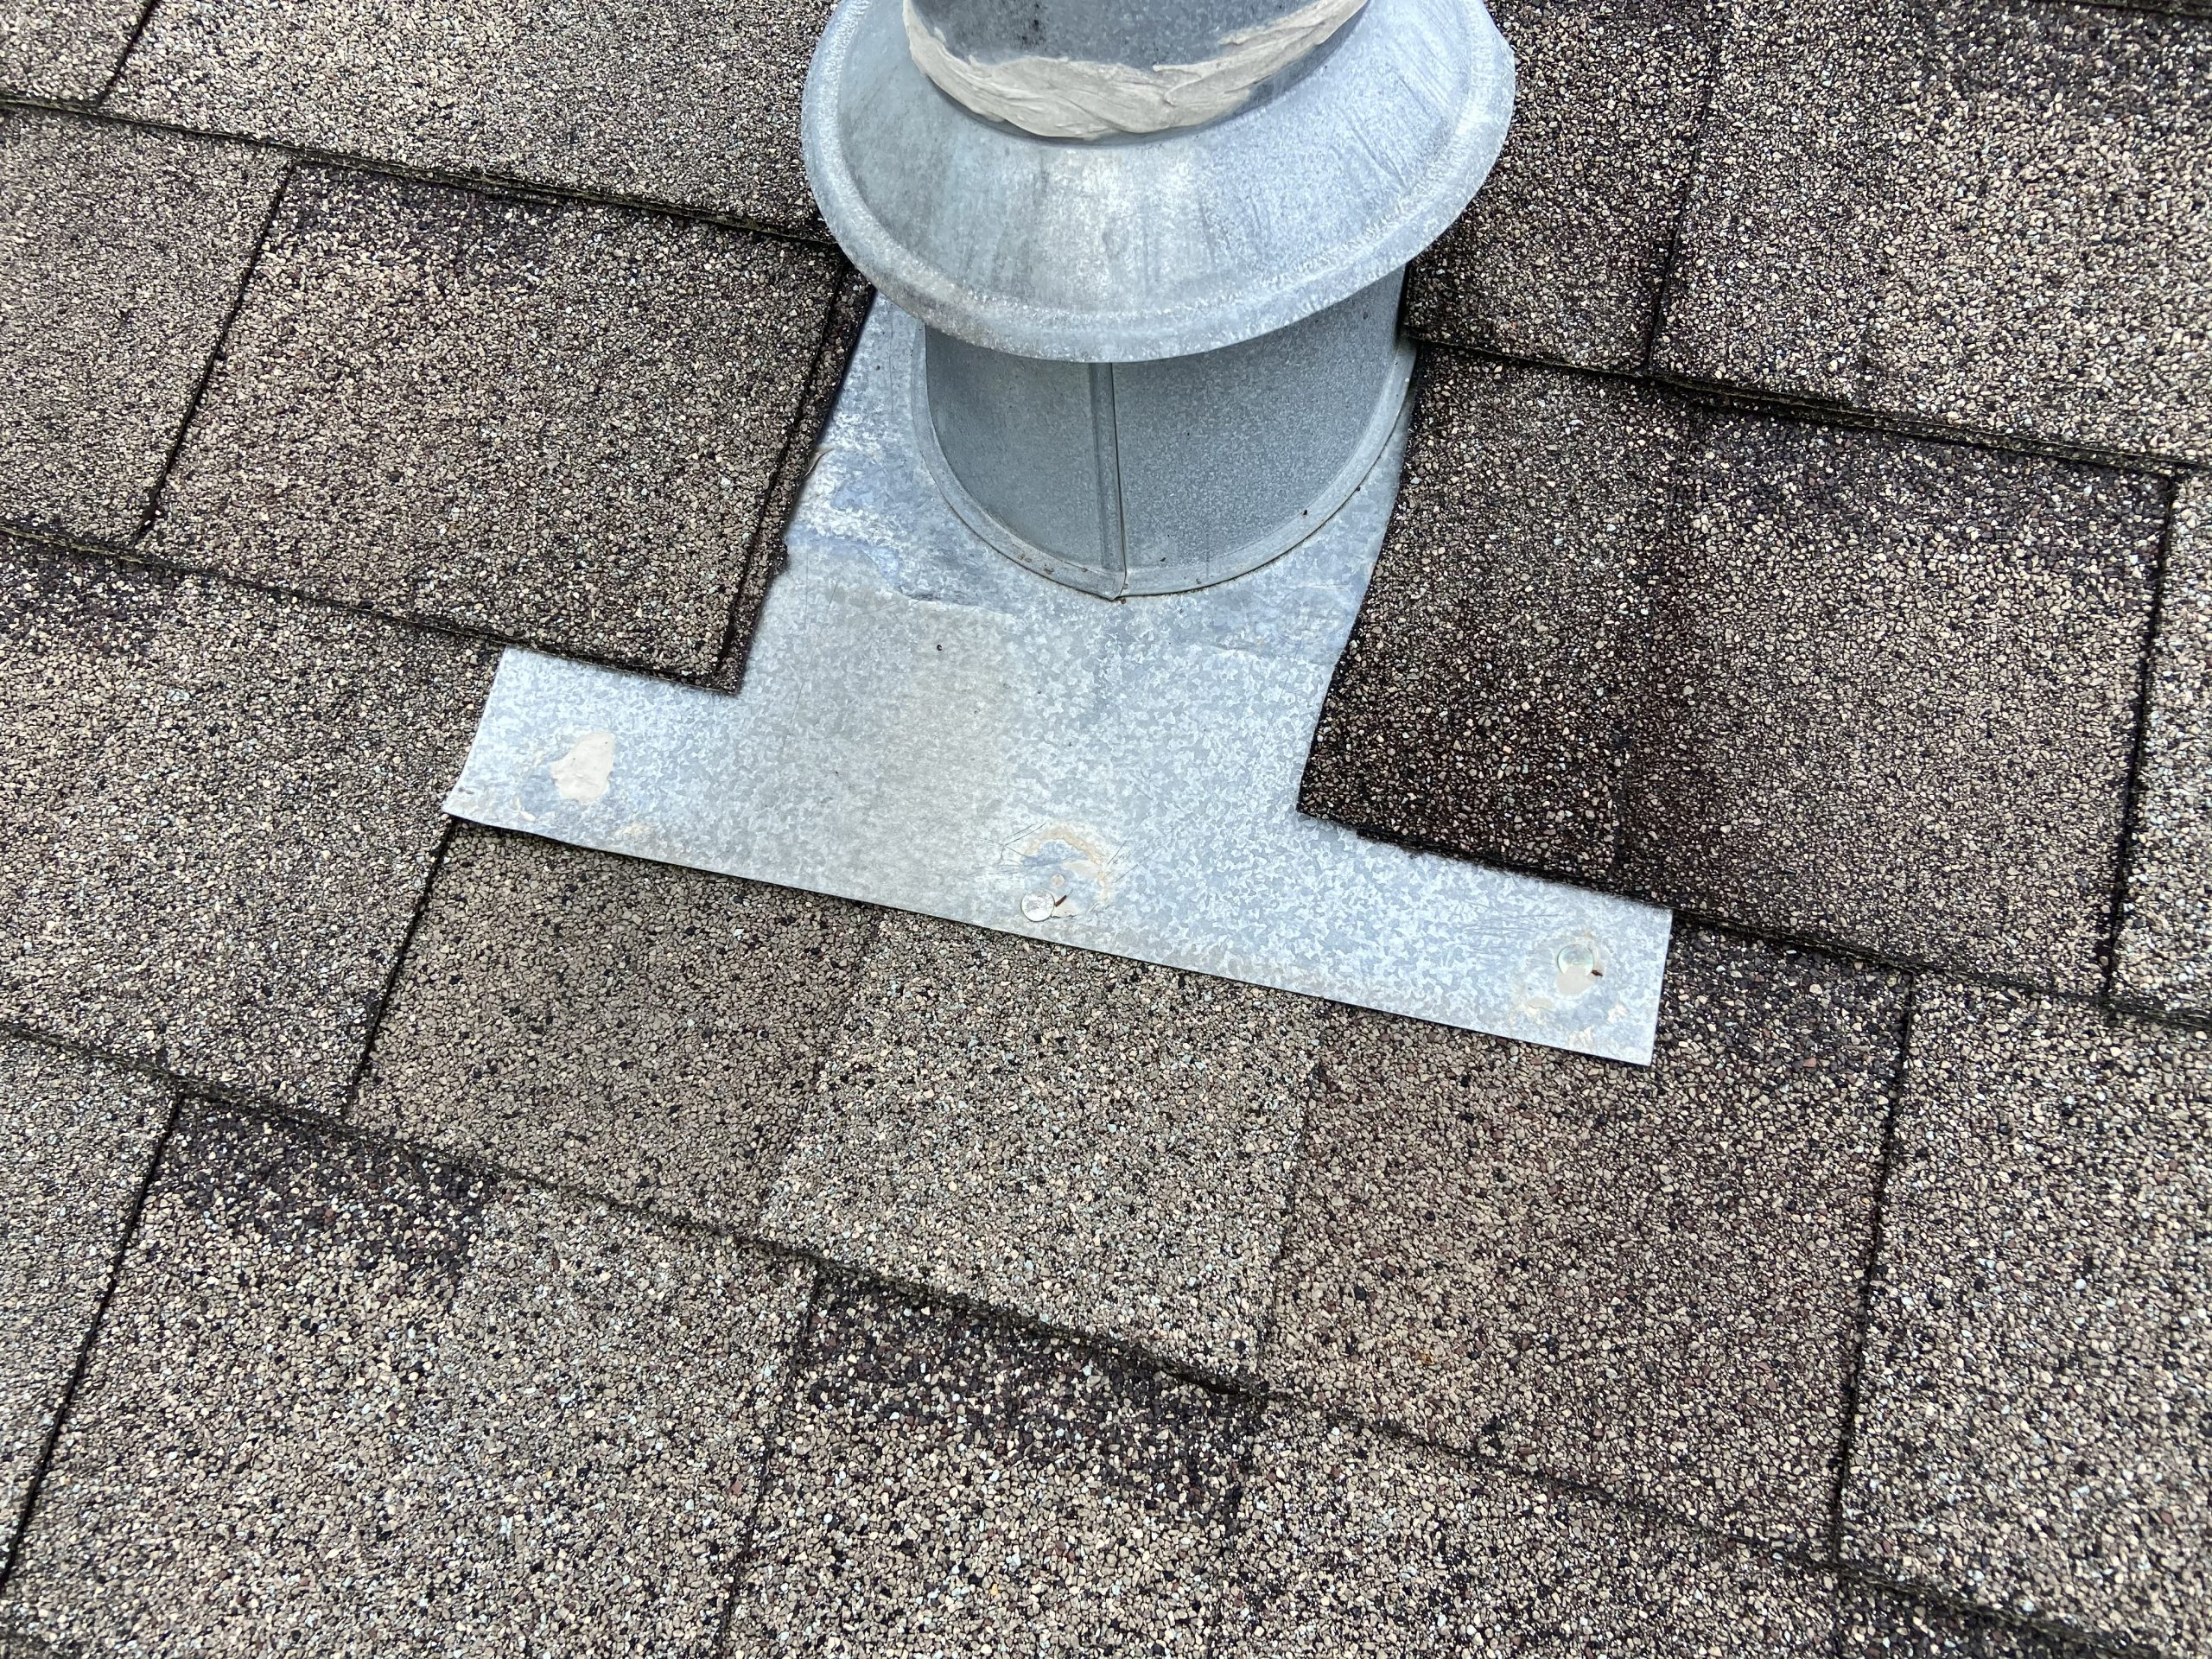 this picture shows a metal pipe collar on a roof and the nails of the pipe collar have caulking on them to prevent leaking